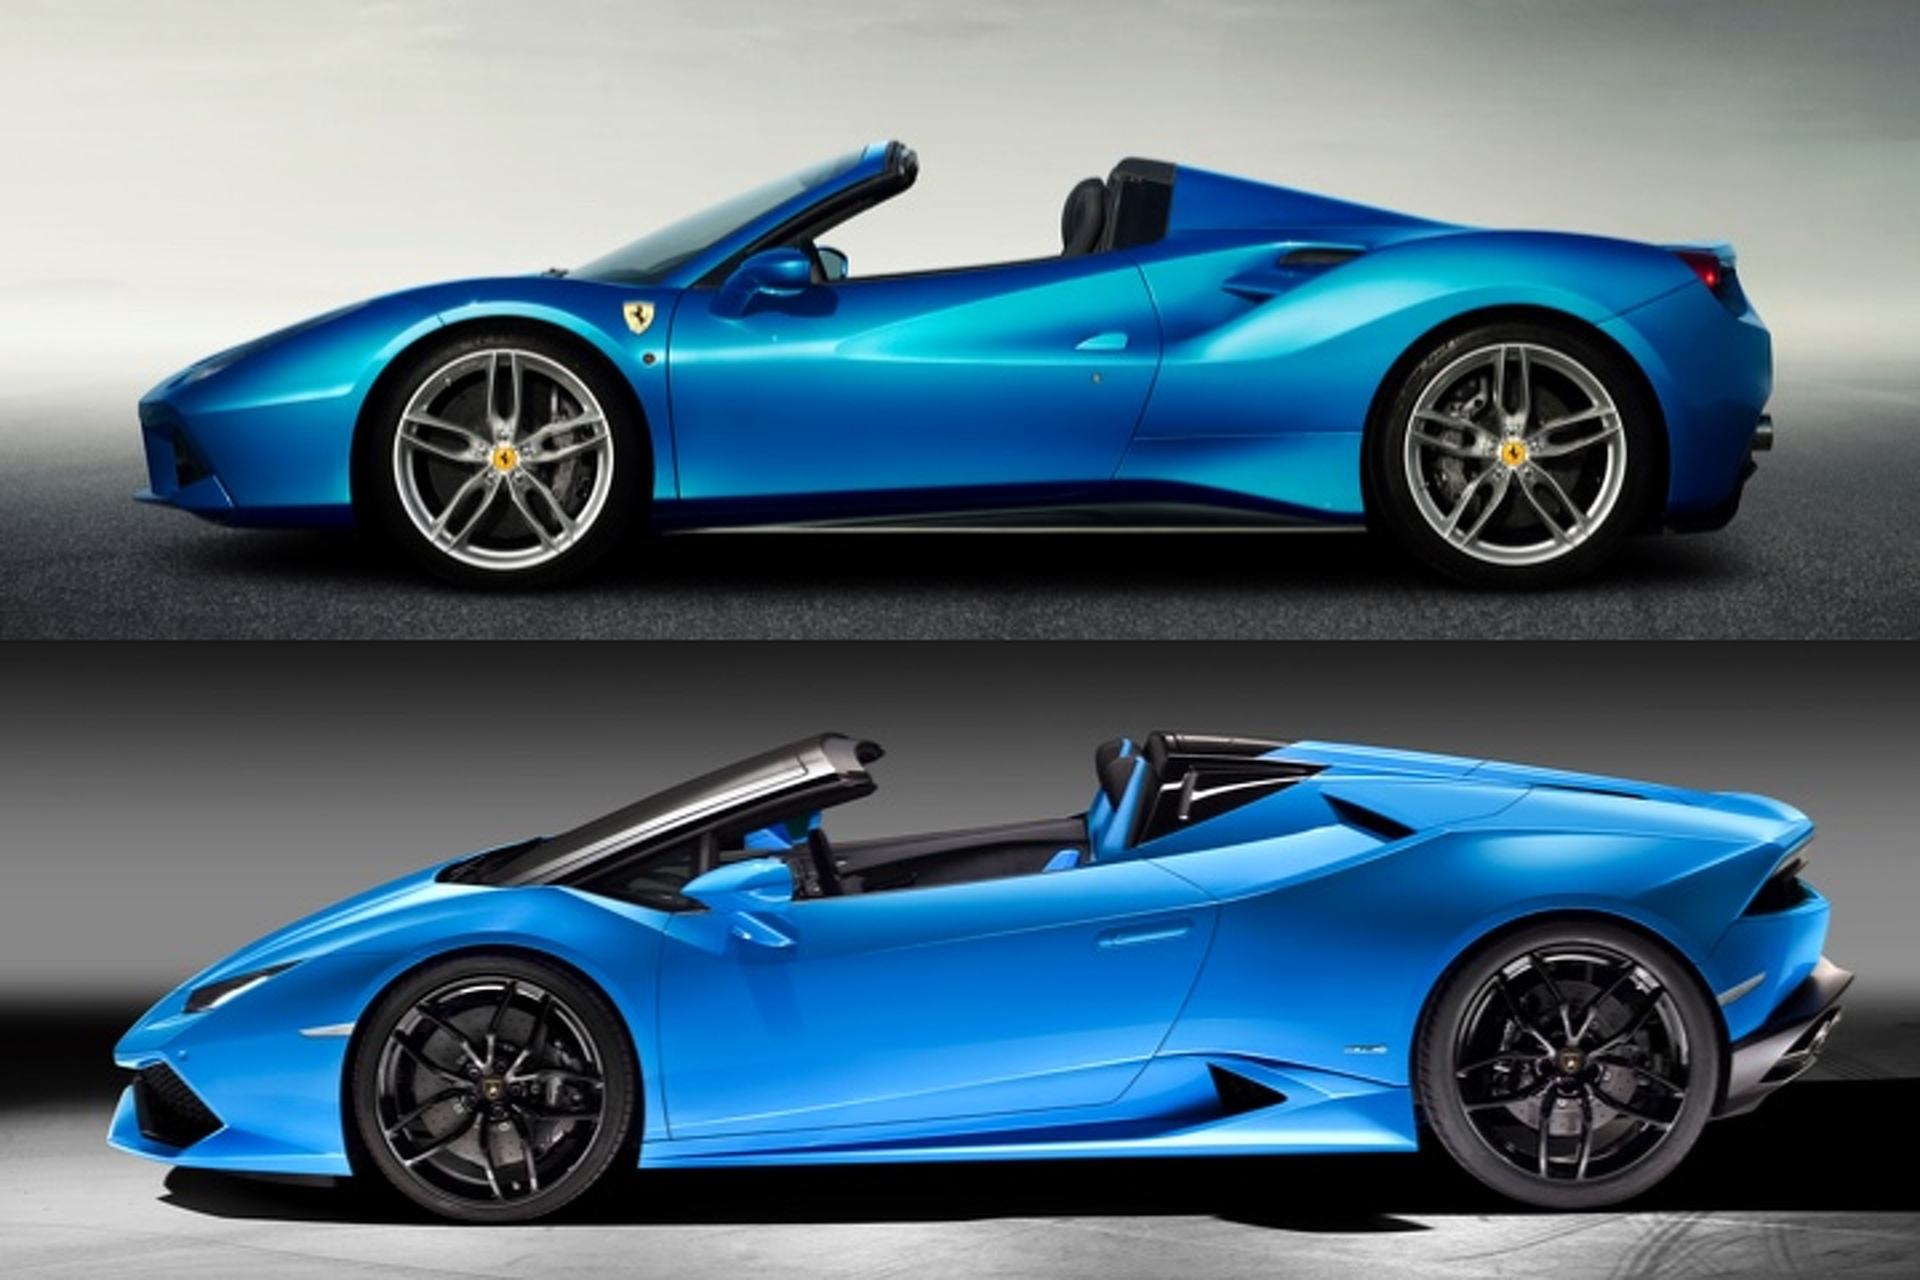 lamborghini huracan spyder vs ferrari 488 how do they stack up. Black Bedroom Furniture Sets. Home Design Ideas